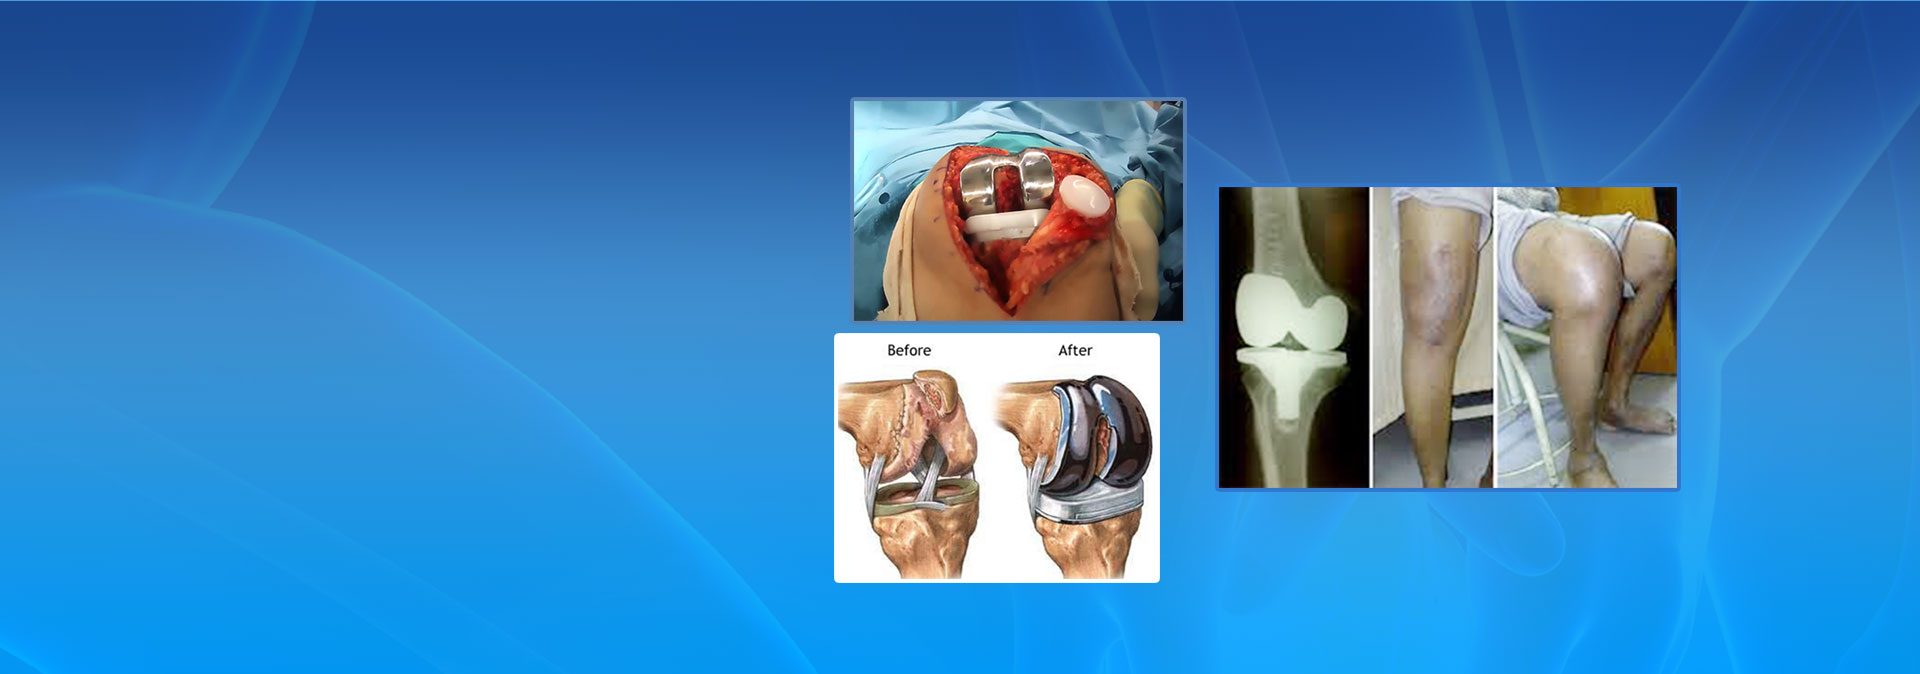 knee replacement image